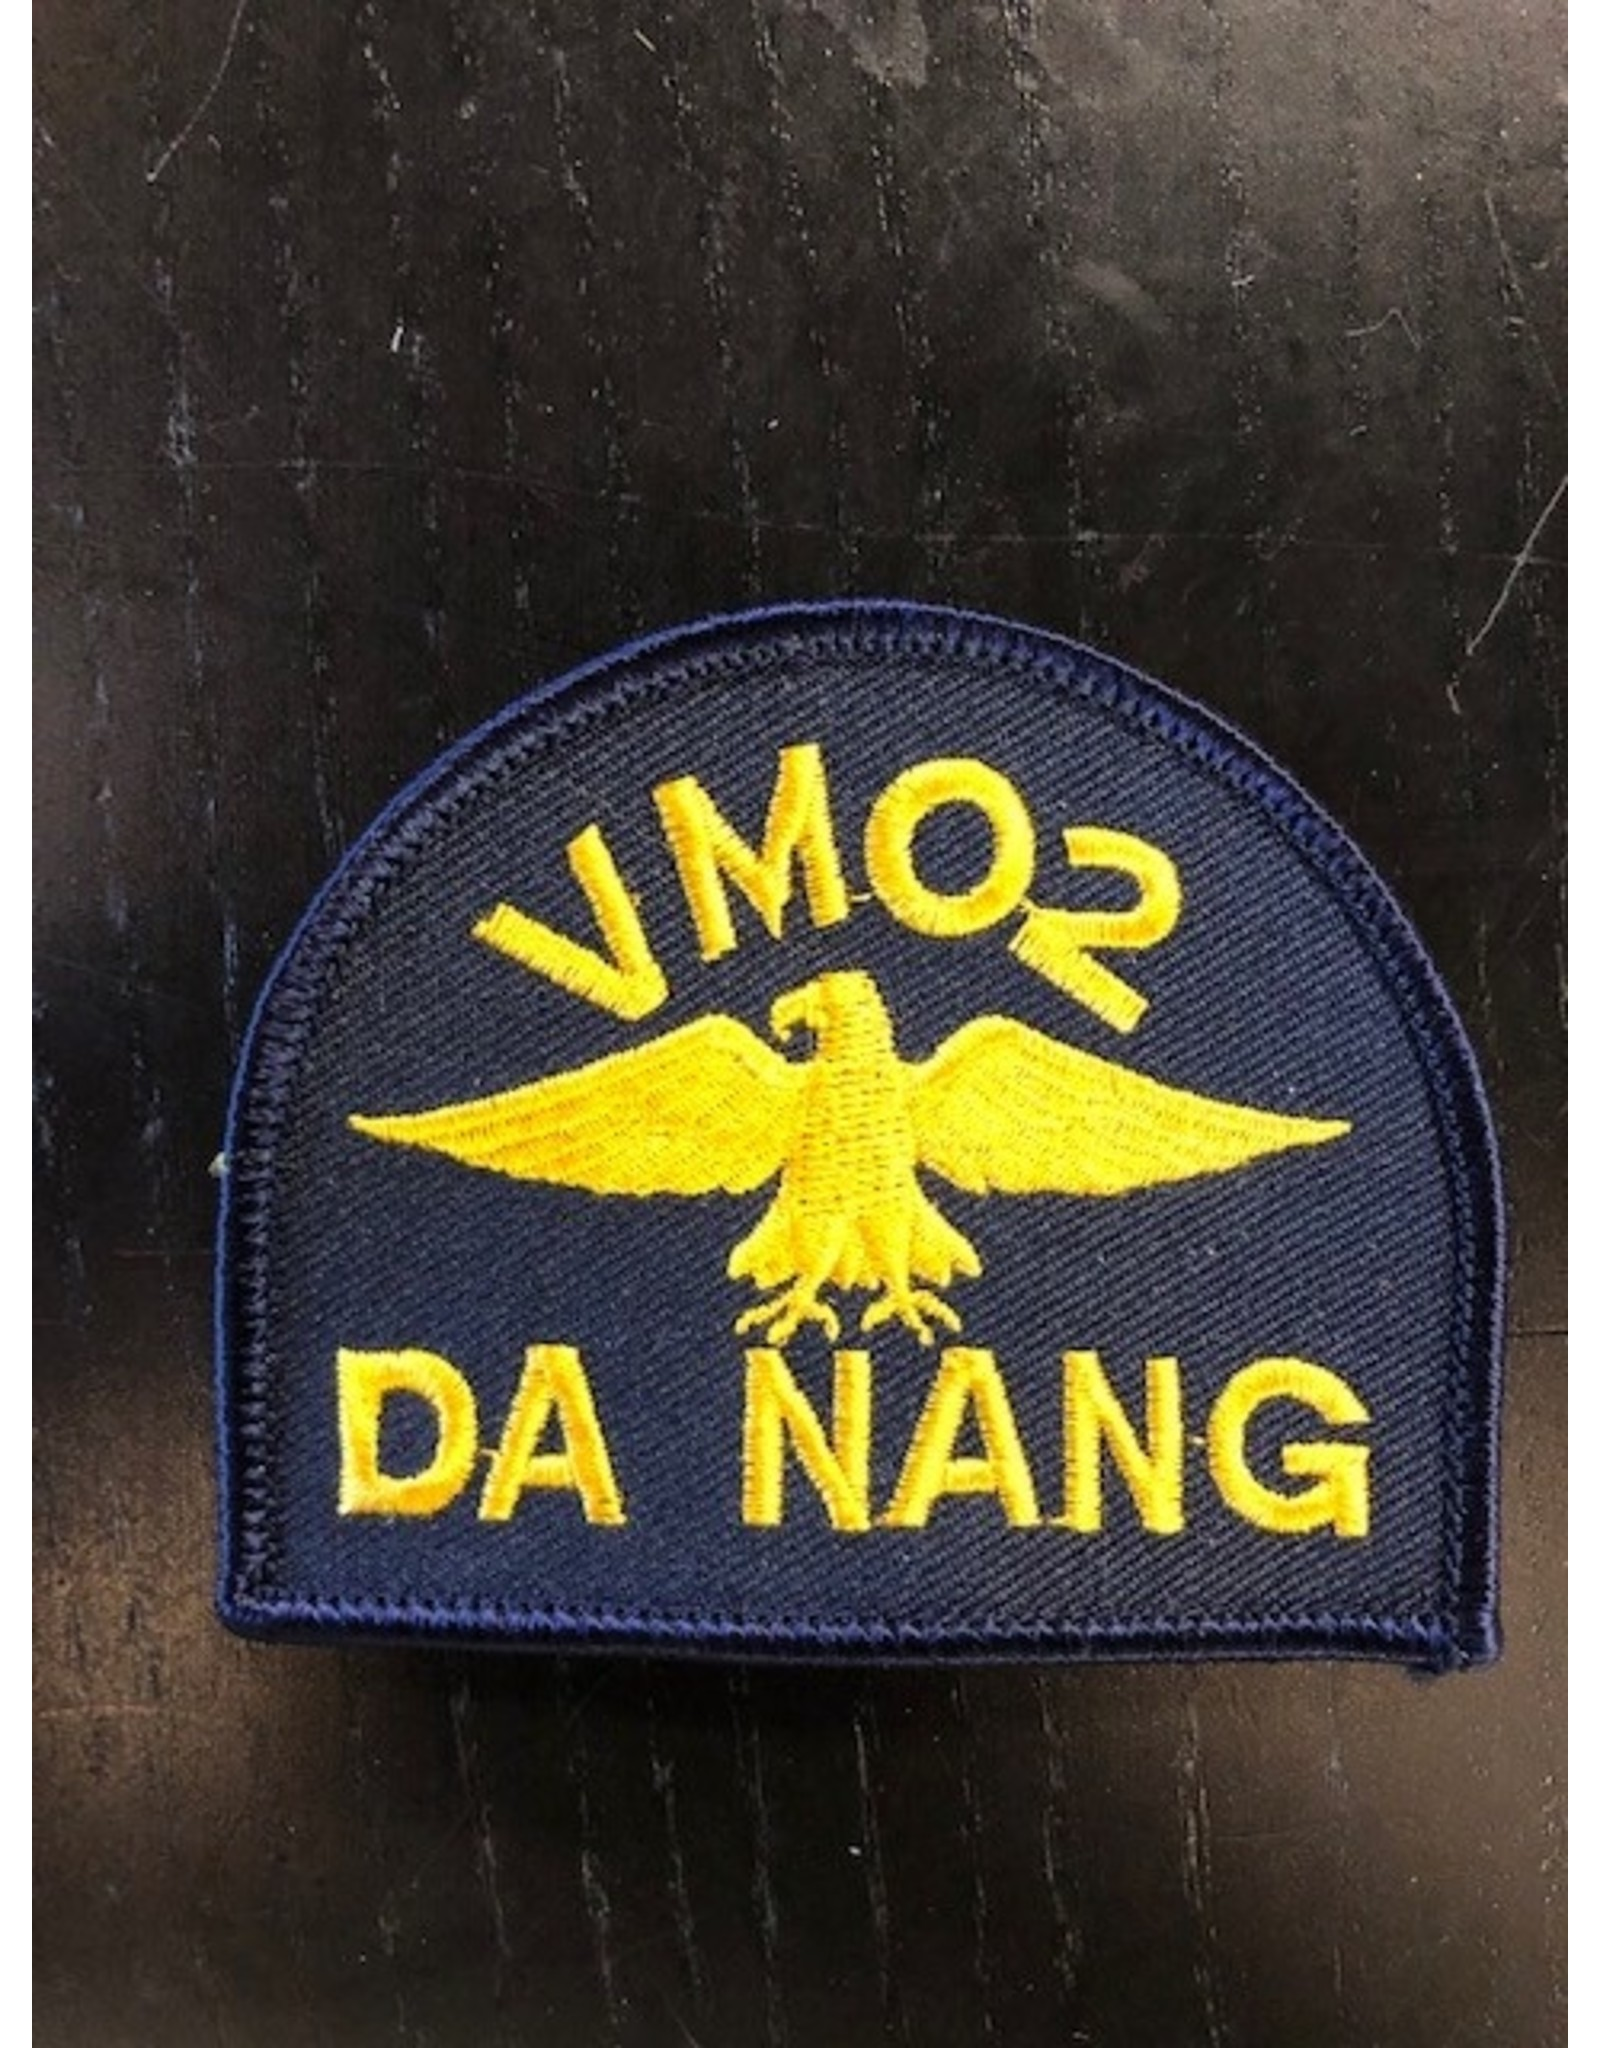 FWAM VMO-2 Da Nang (18), patch